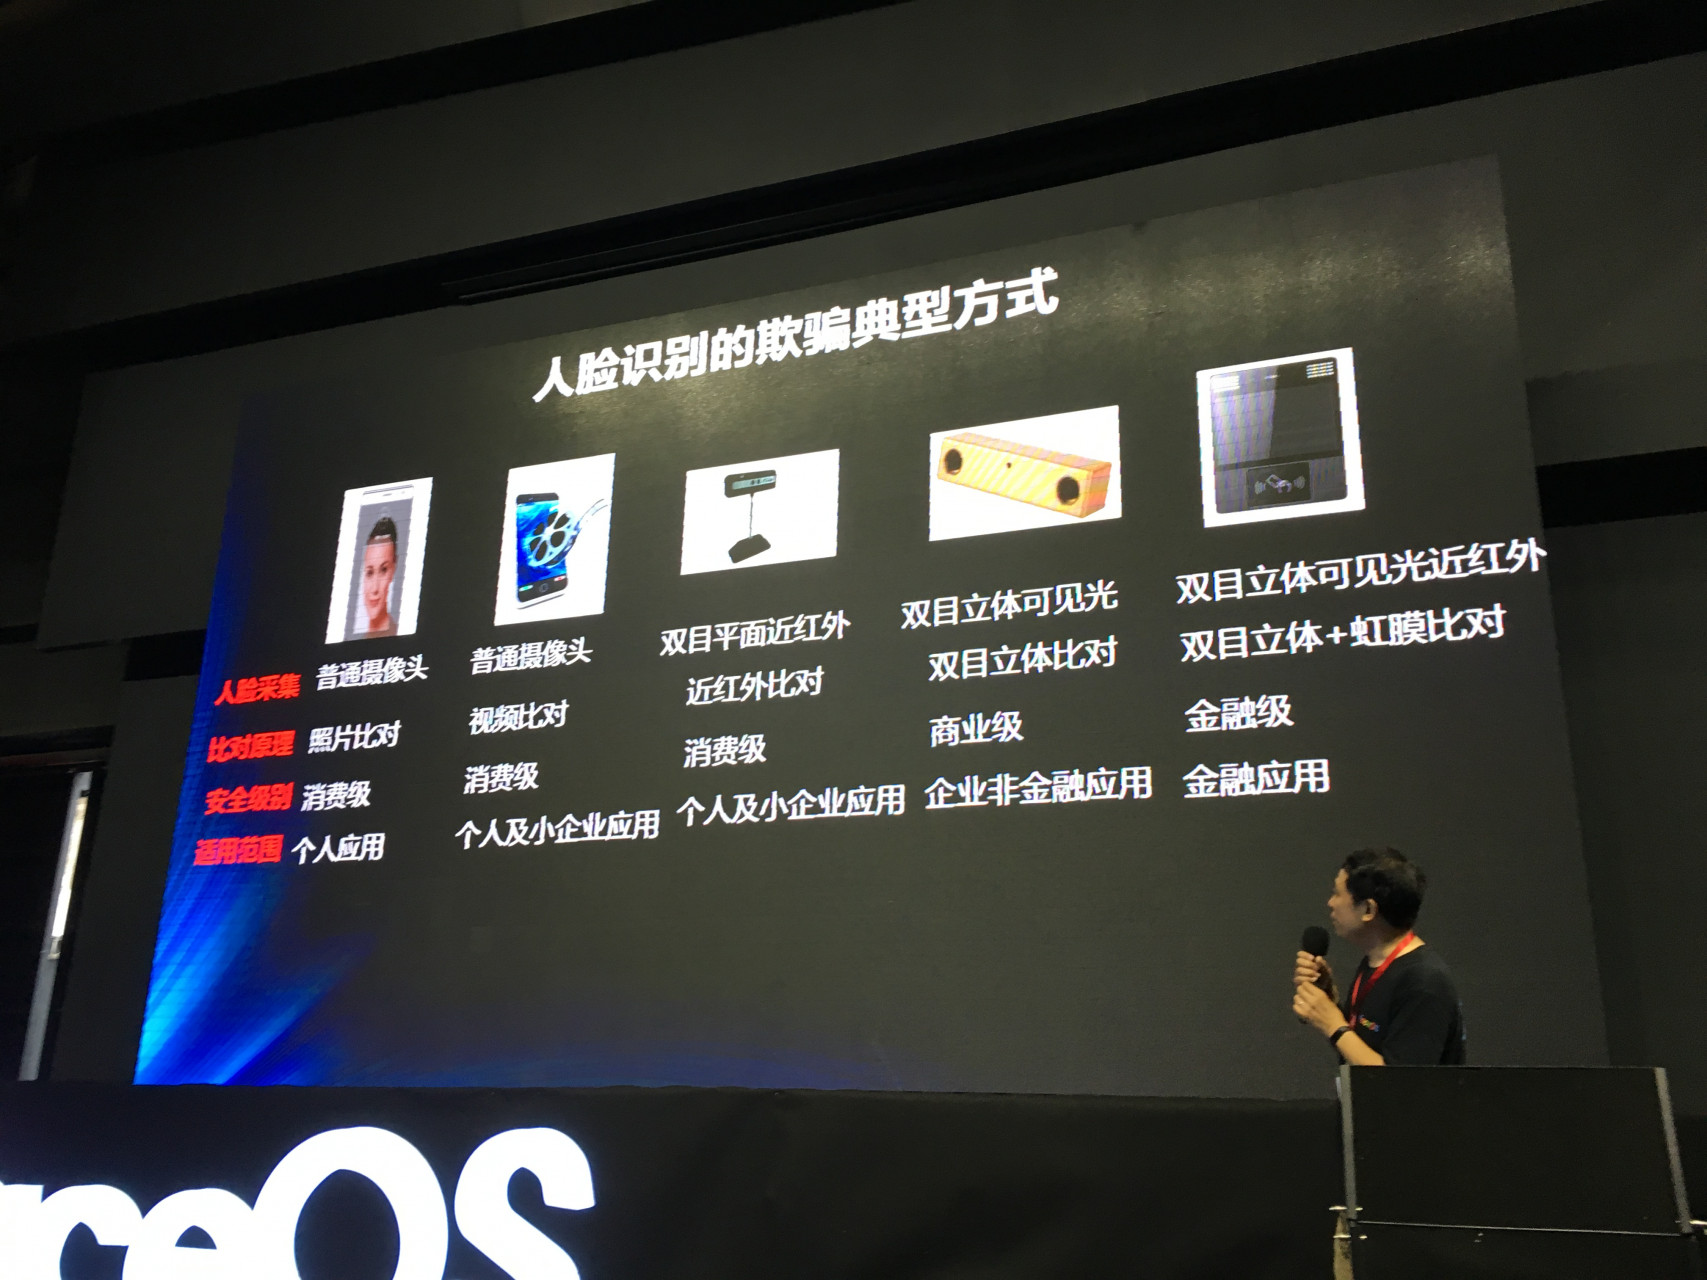 Wang Haizeng, founder and CEO of Zhuhai FaceOS Technology Co. Ltd (Image Credit: TechNode)